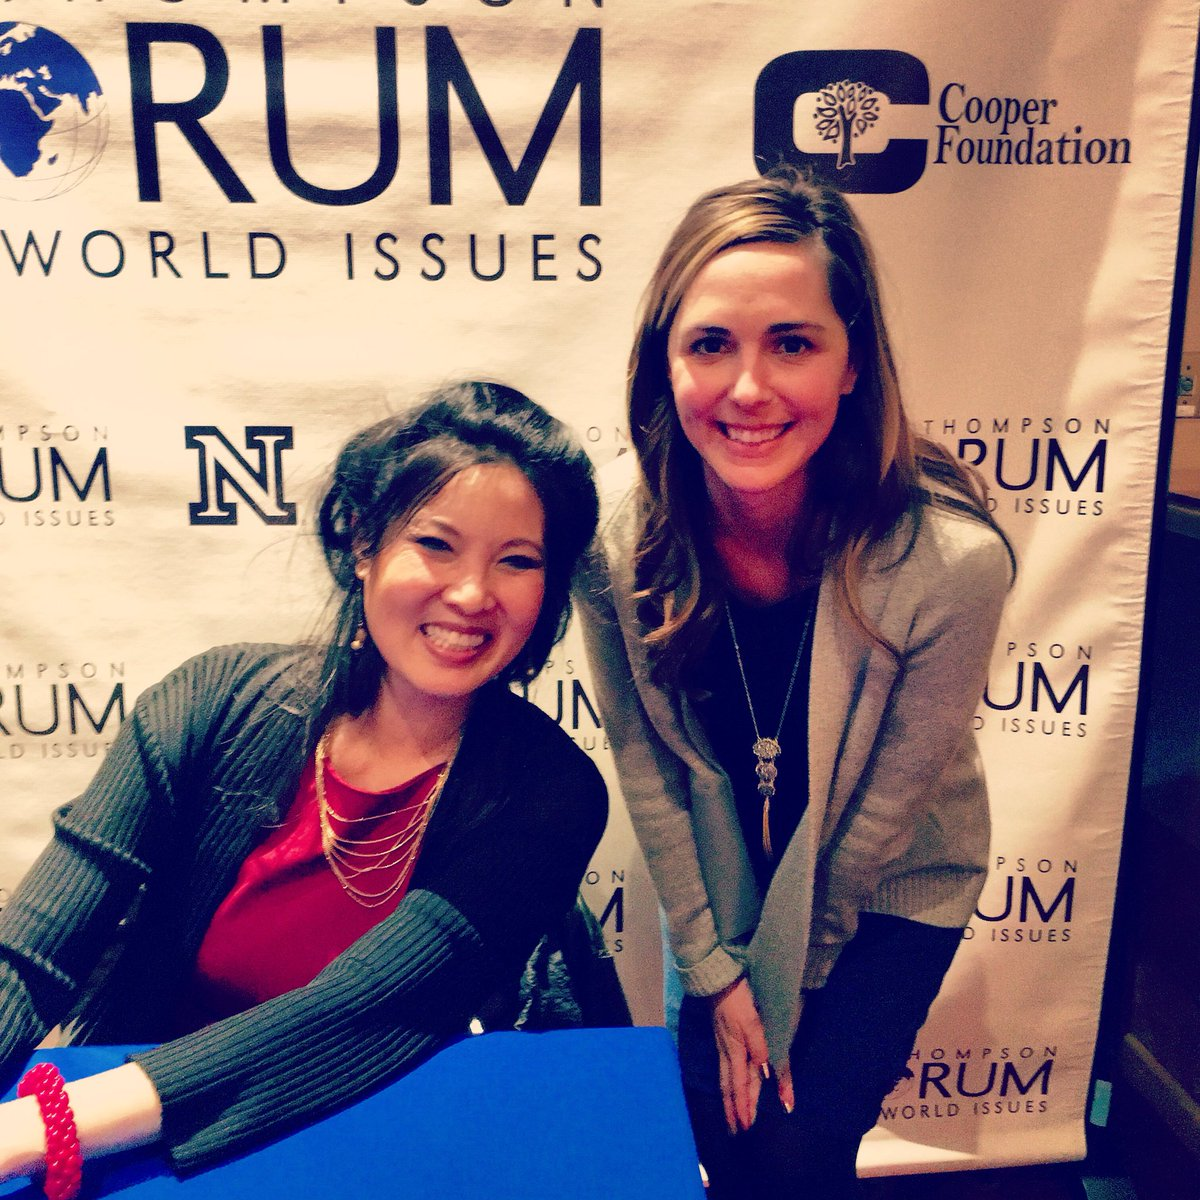 Thanks for shining the light on issues facing women & girls at #ENThompsonForum @WuDunn https://t.co/F0bG9CsJbe